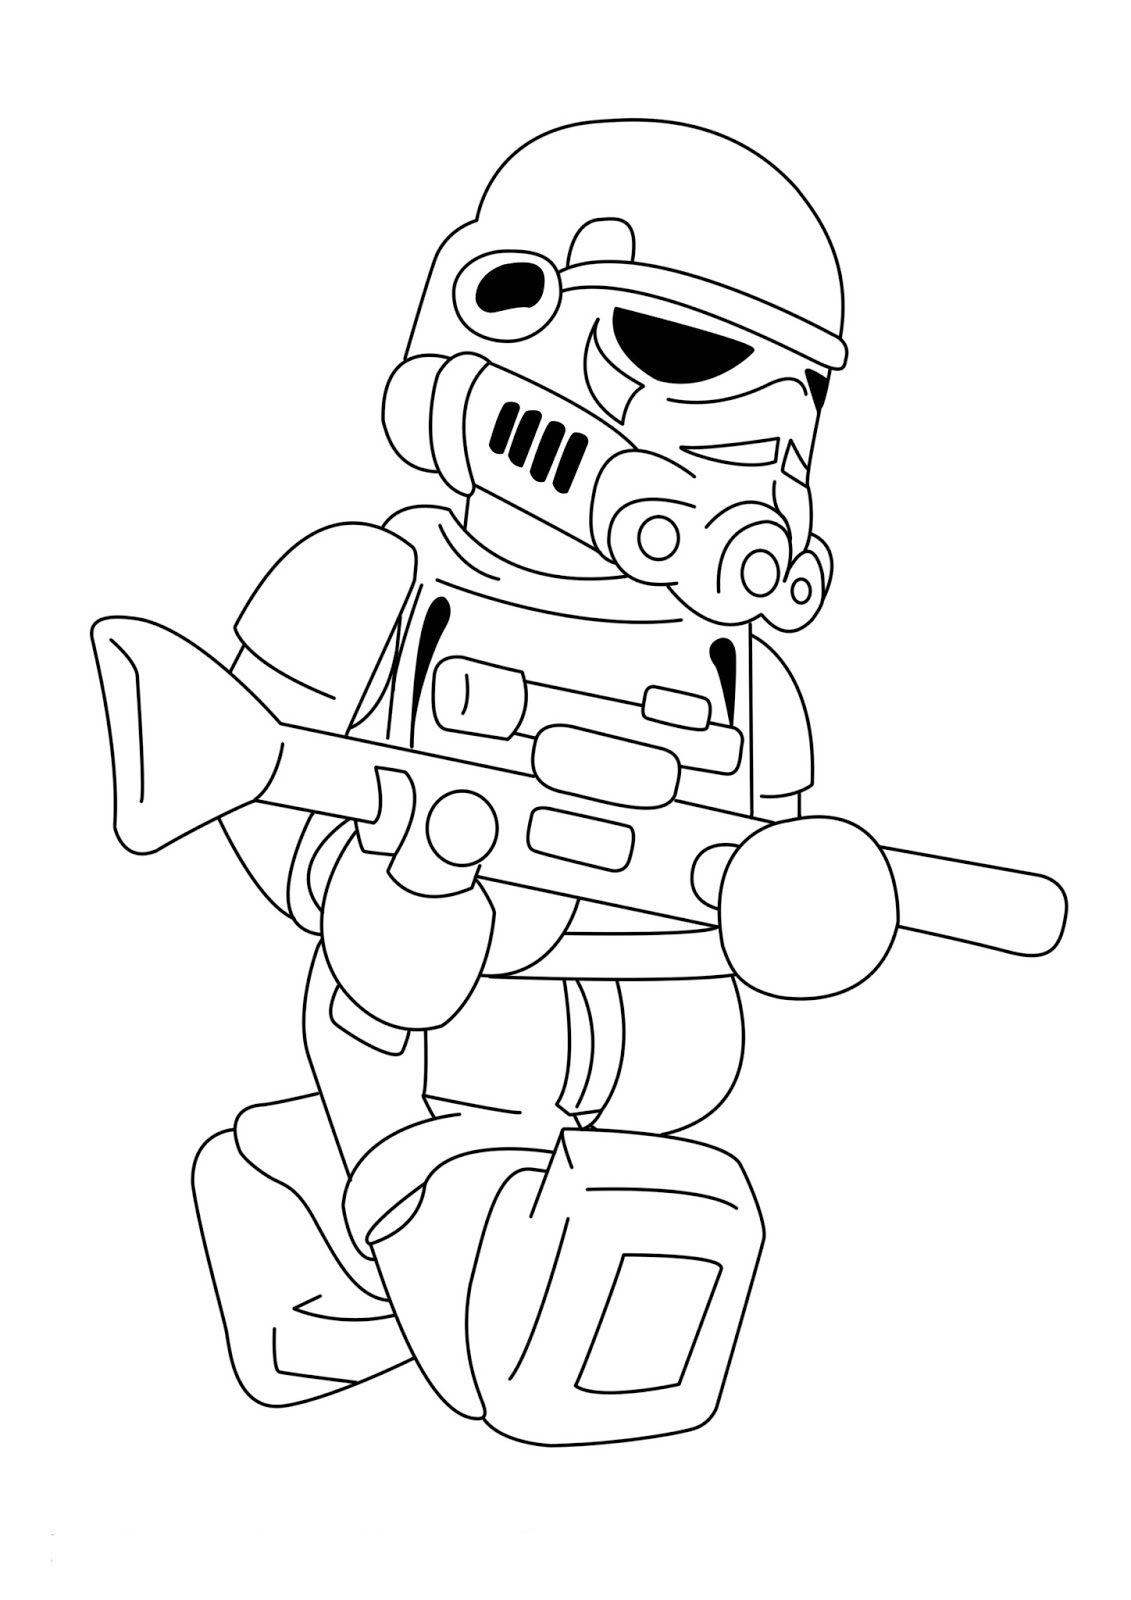 lego star wars coloring pages to print get this free lego star wars coloring pages 33677 print pages wars star to lego coloring